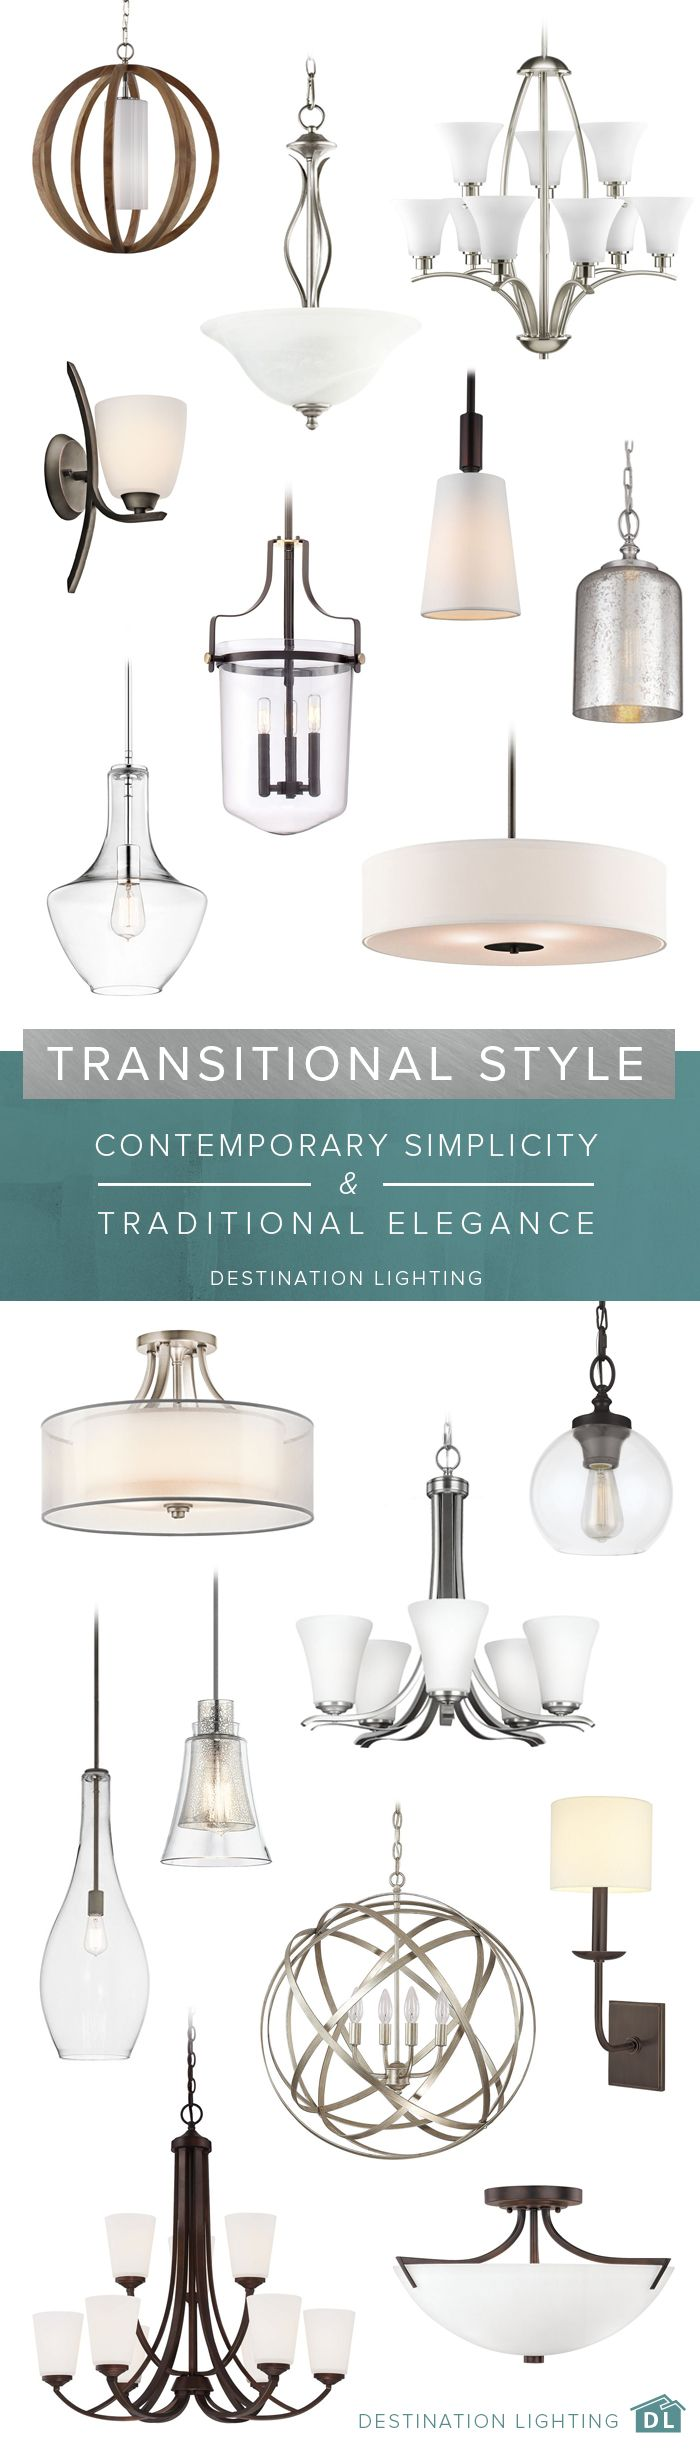 Contemporary simplicity meets traditional elegance with these beautiful transitional designs.